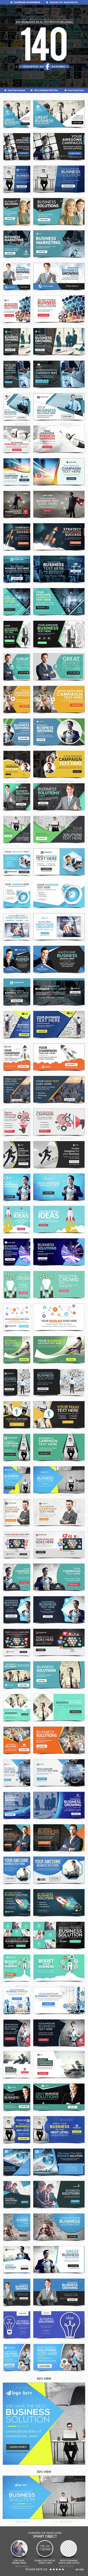 Facebook Ad Banners - 140 Banners - Social Media Web Elements